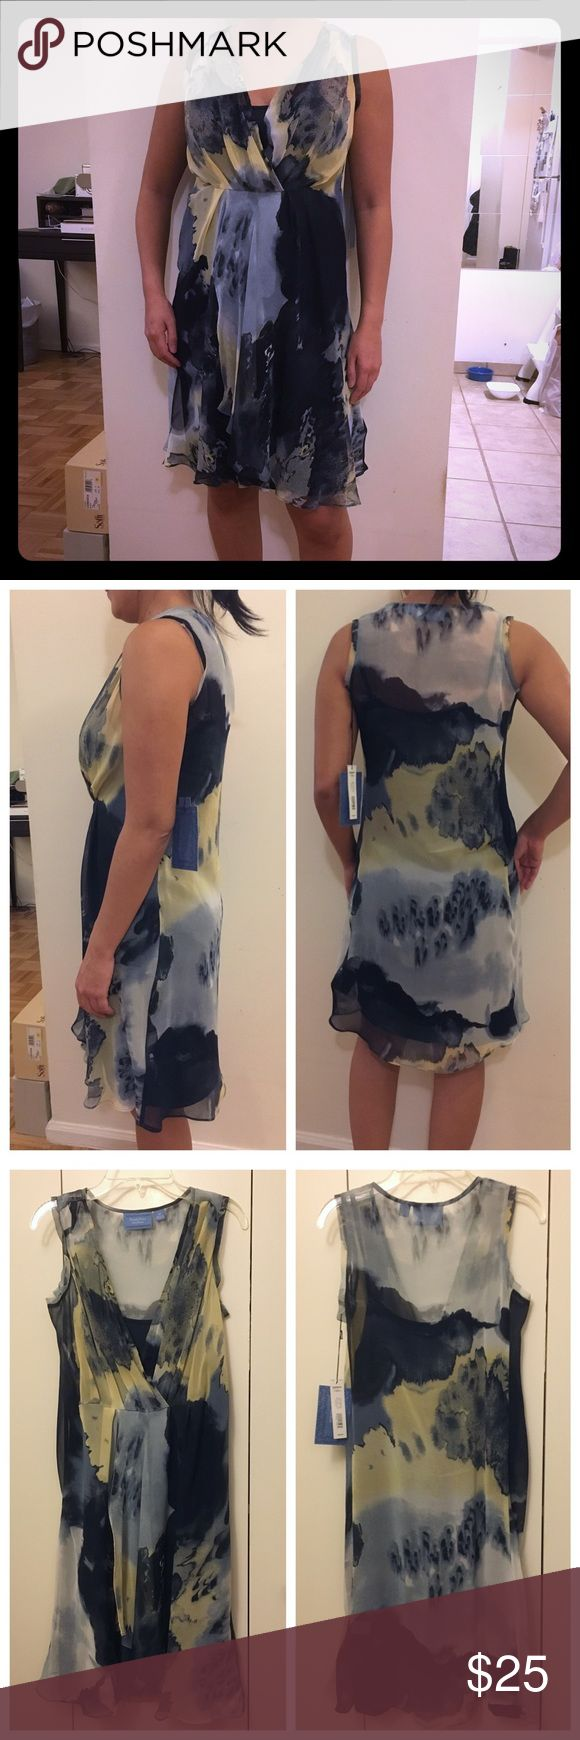 Simply Vera Vera Wang watercolor floral dress Flowy, floral print dress.  Great for work or weekends.  Never worn, new with tags. Simply Vera Vera Wang Dresses Midi